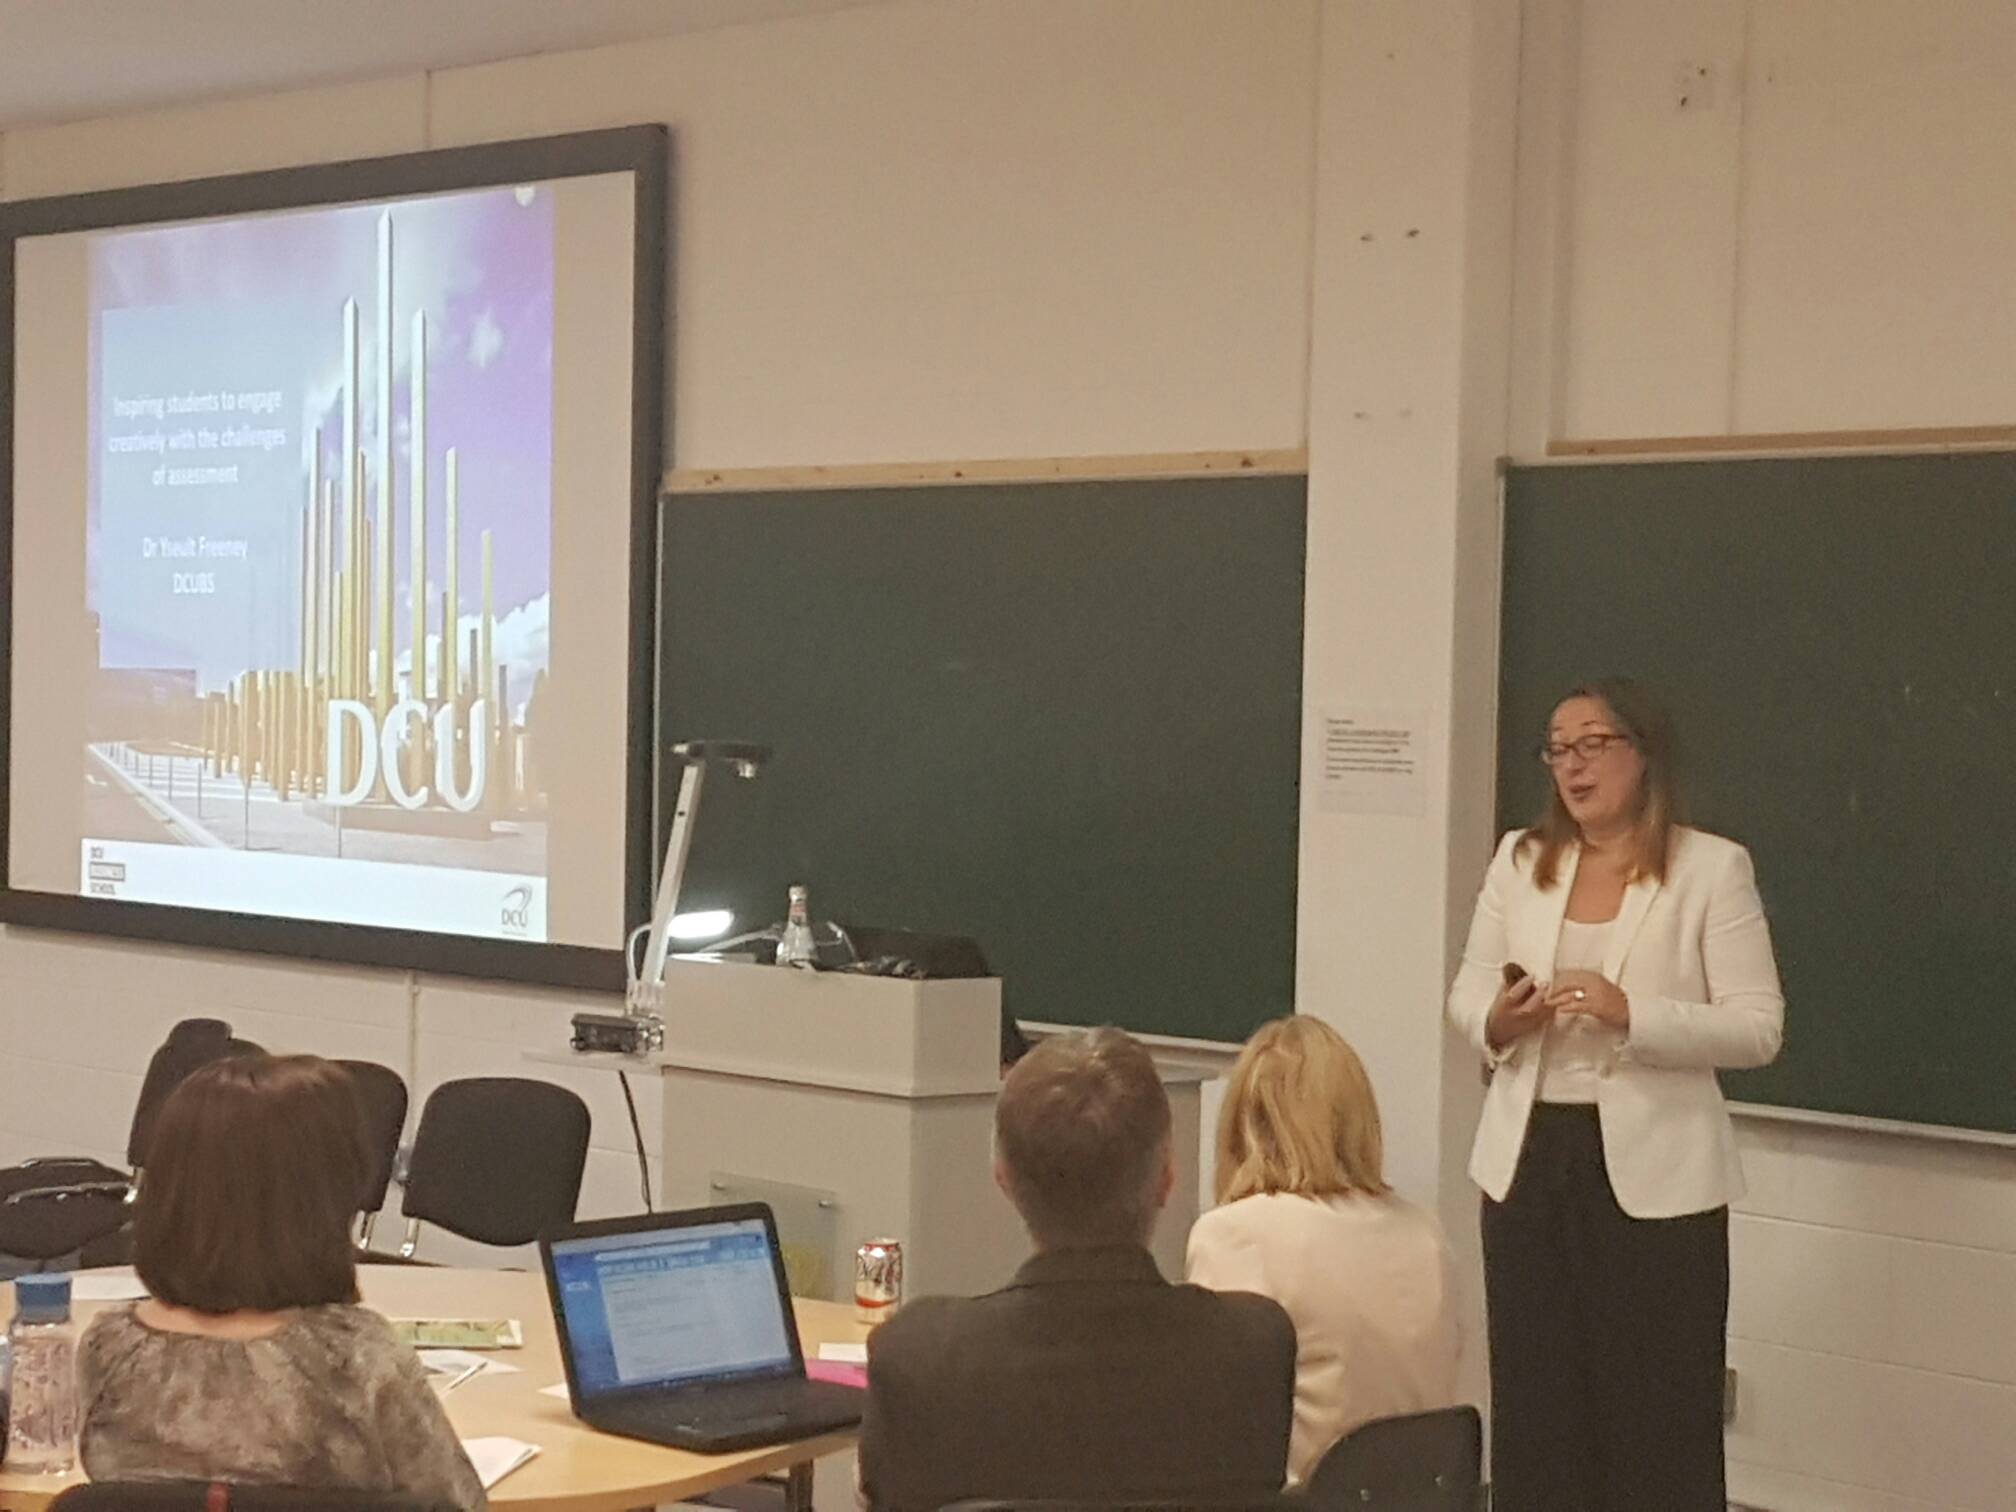 Yseult Freeney from @DublinCityUni talking about use of Rubrics to give feedback #dcuteu https://t.co/jSkMCecMeg